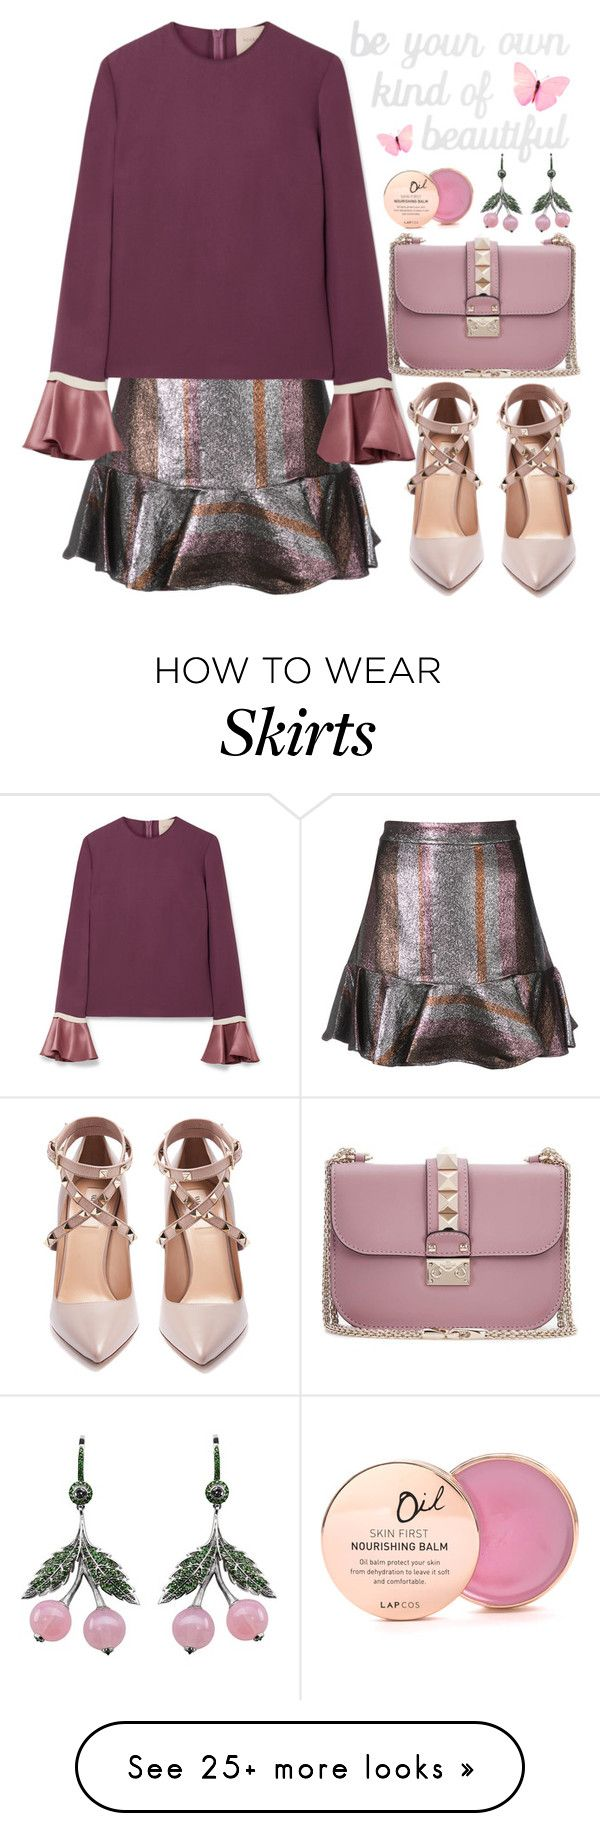 """RTD - Your own kind of beautiful"" by aleks-g on Polyvore featuring 10 Crosby Derek Lam, Roksanda, PBteen, Valentino, Axenoff Jewellery, Lapcos and country"